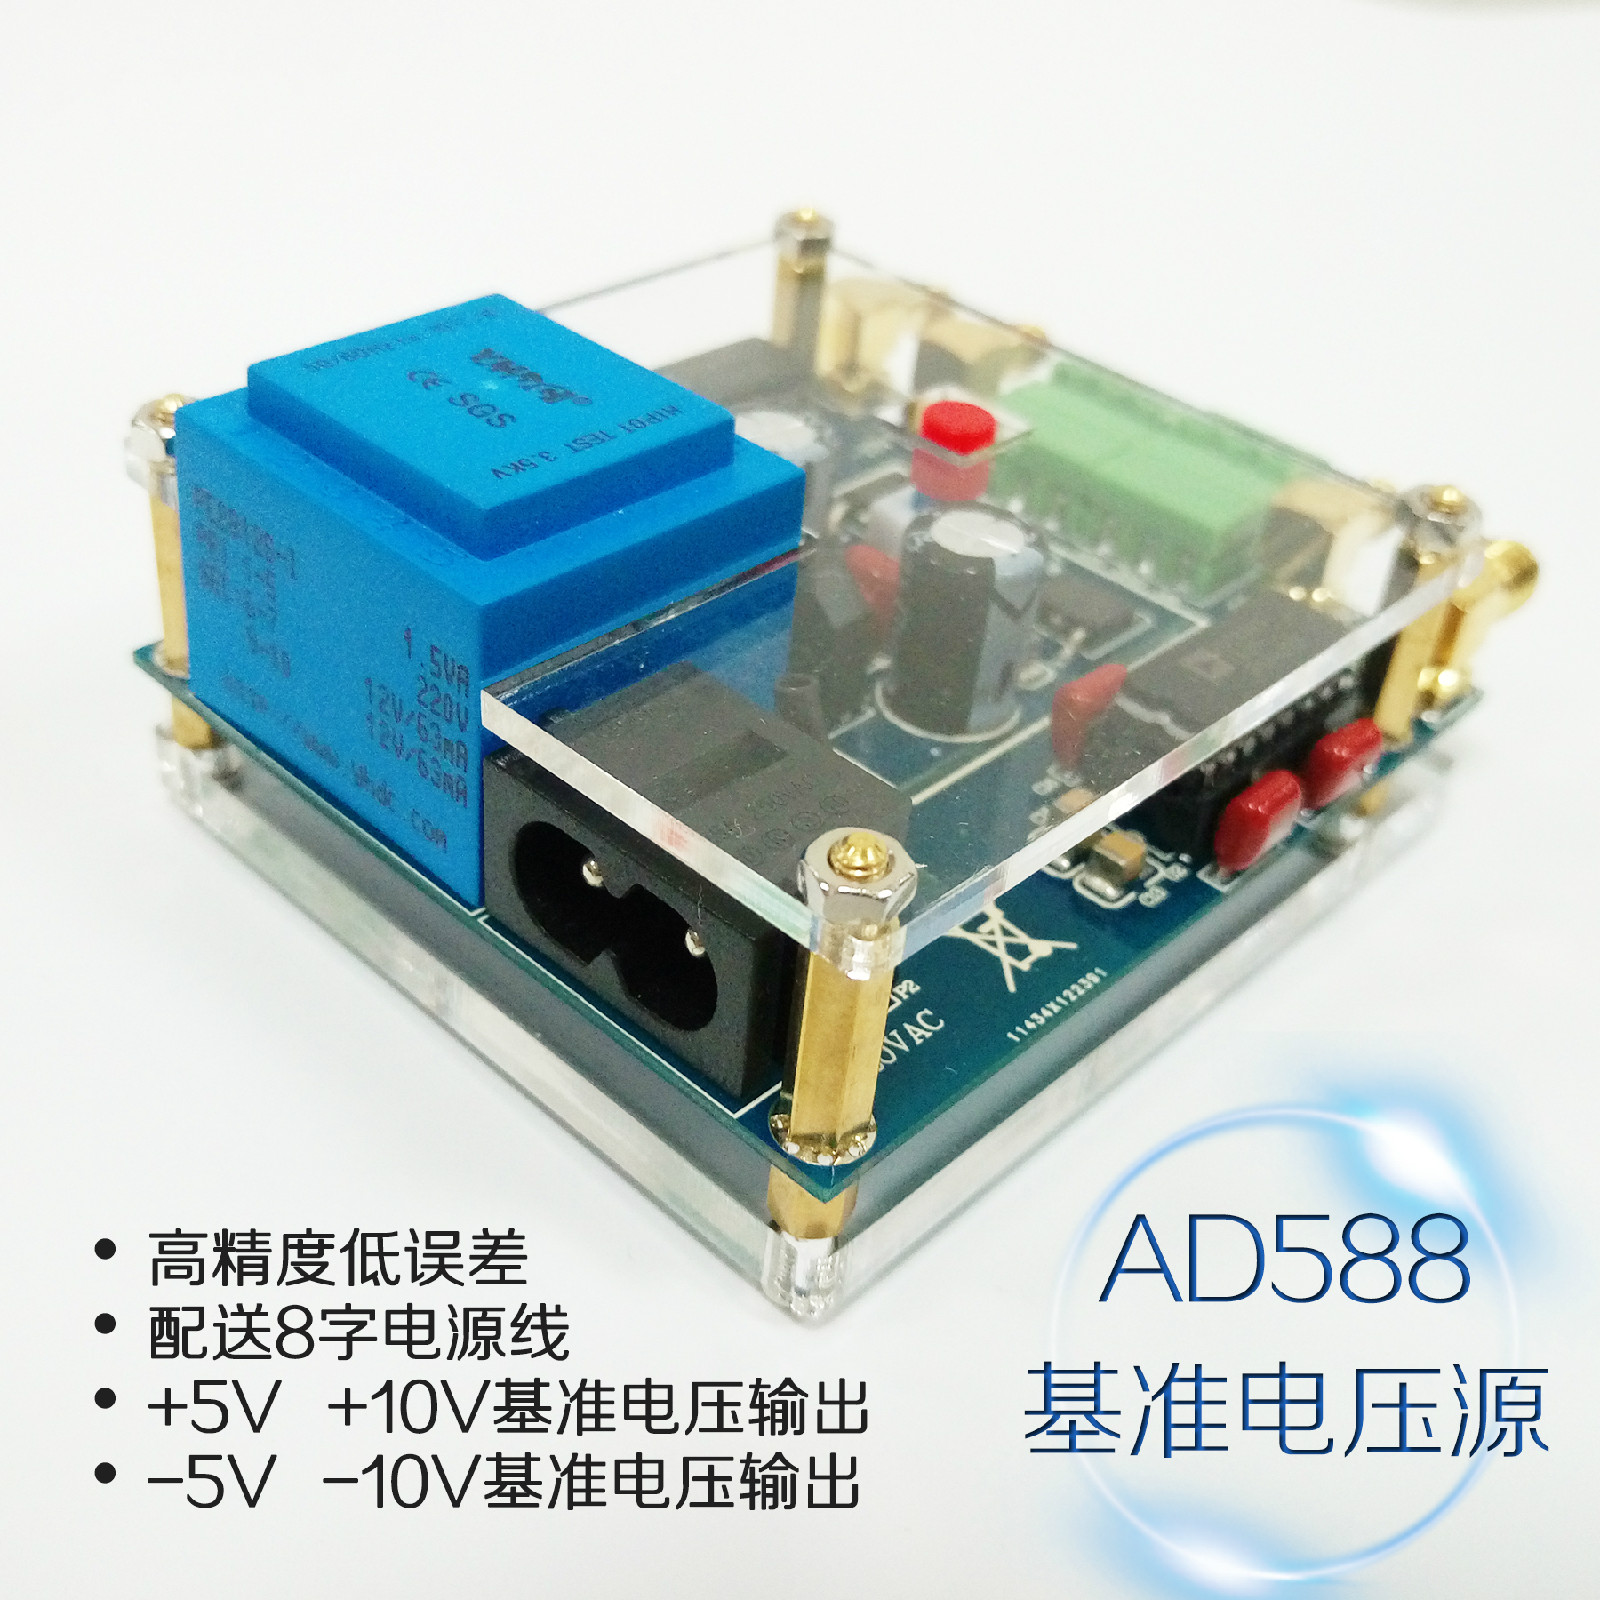 Leory Dc 5v-10v Dac Decoder Module I2s Player 32bit 384k Assembled Board A2-012for Bd Player Hdtv Amplifier Always Buy Good Accessories & Parts